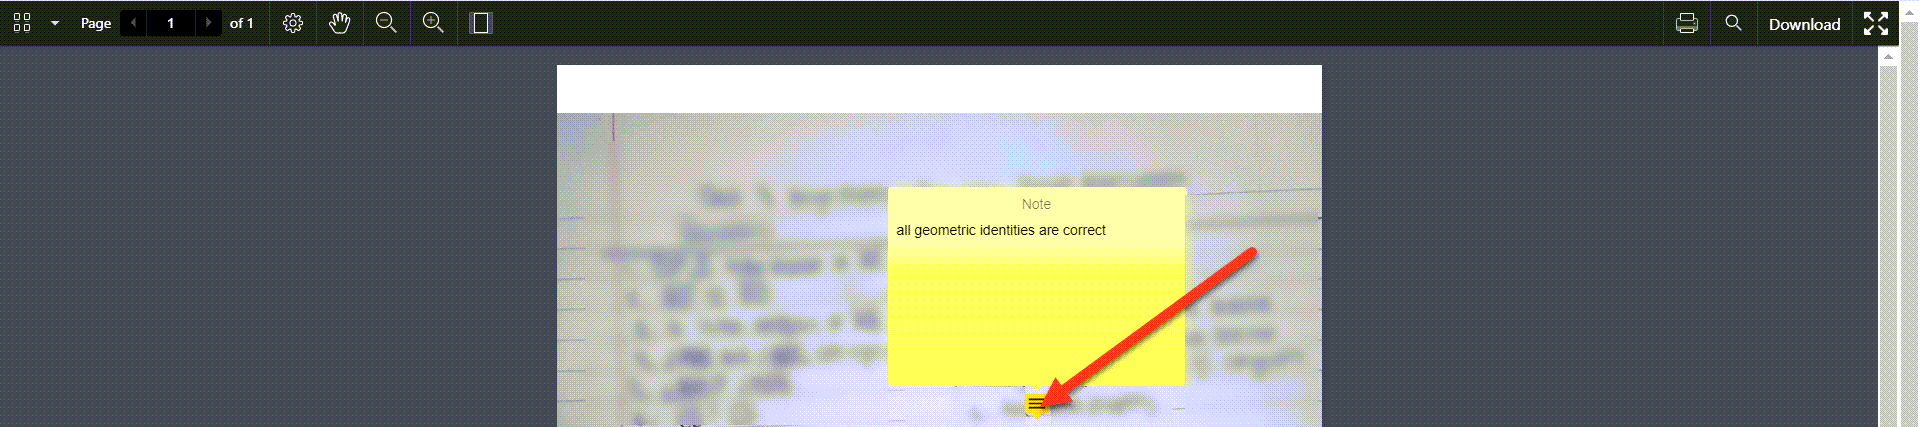 A blurred out portion of a PDF scanned image of an assignment is shown with an arrow pointing to a notes icon. The notes are displayed as feedback for students to review.